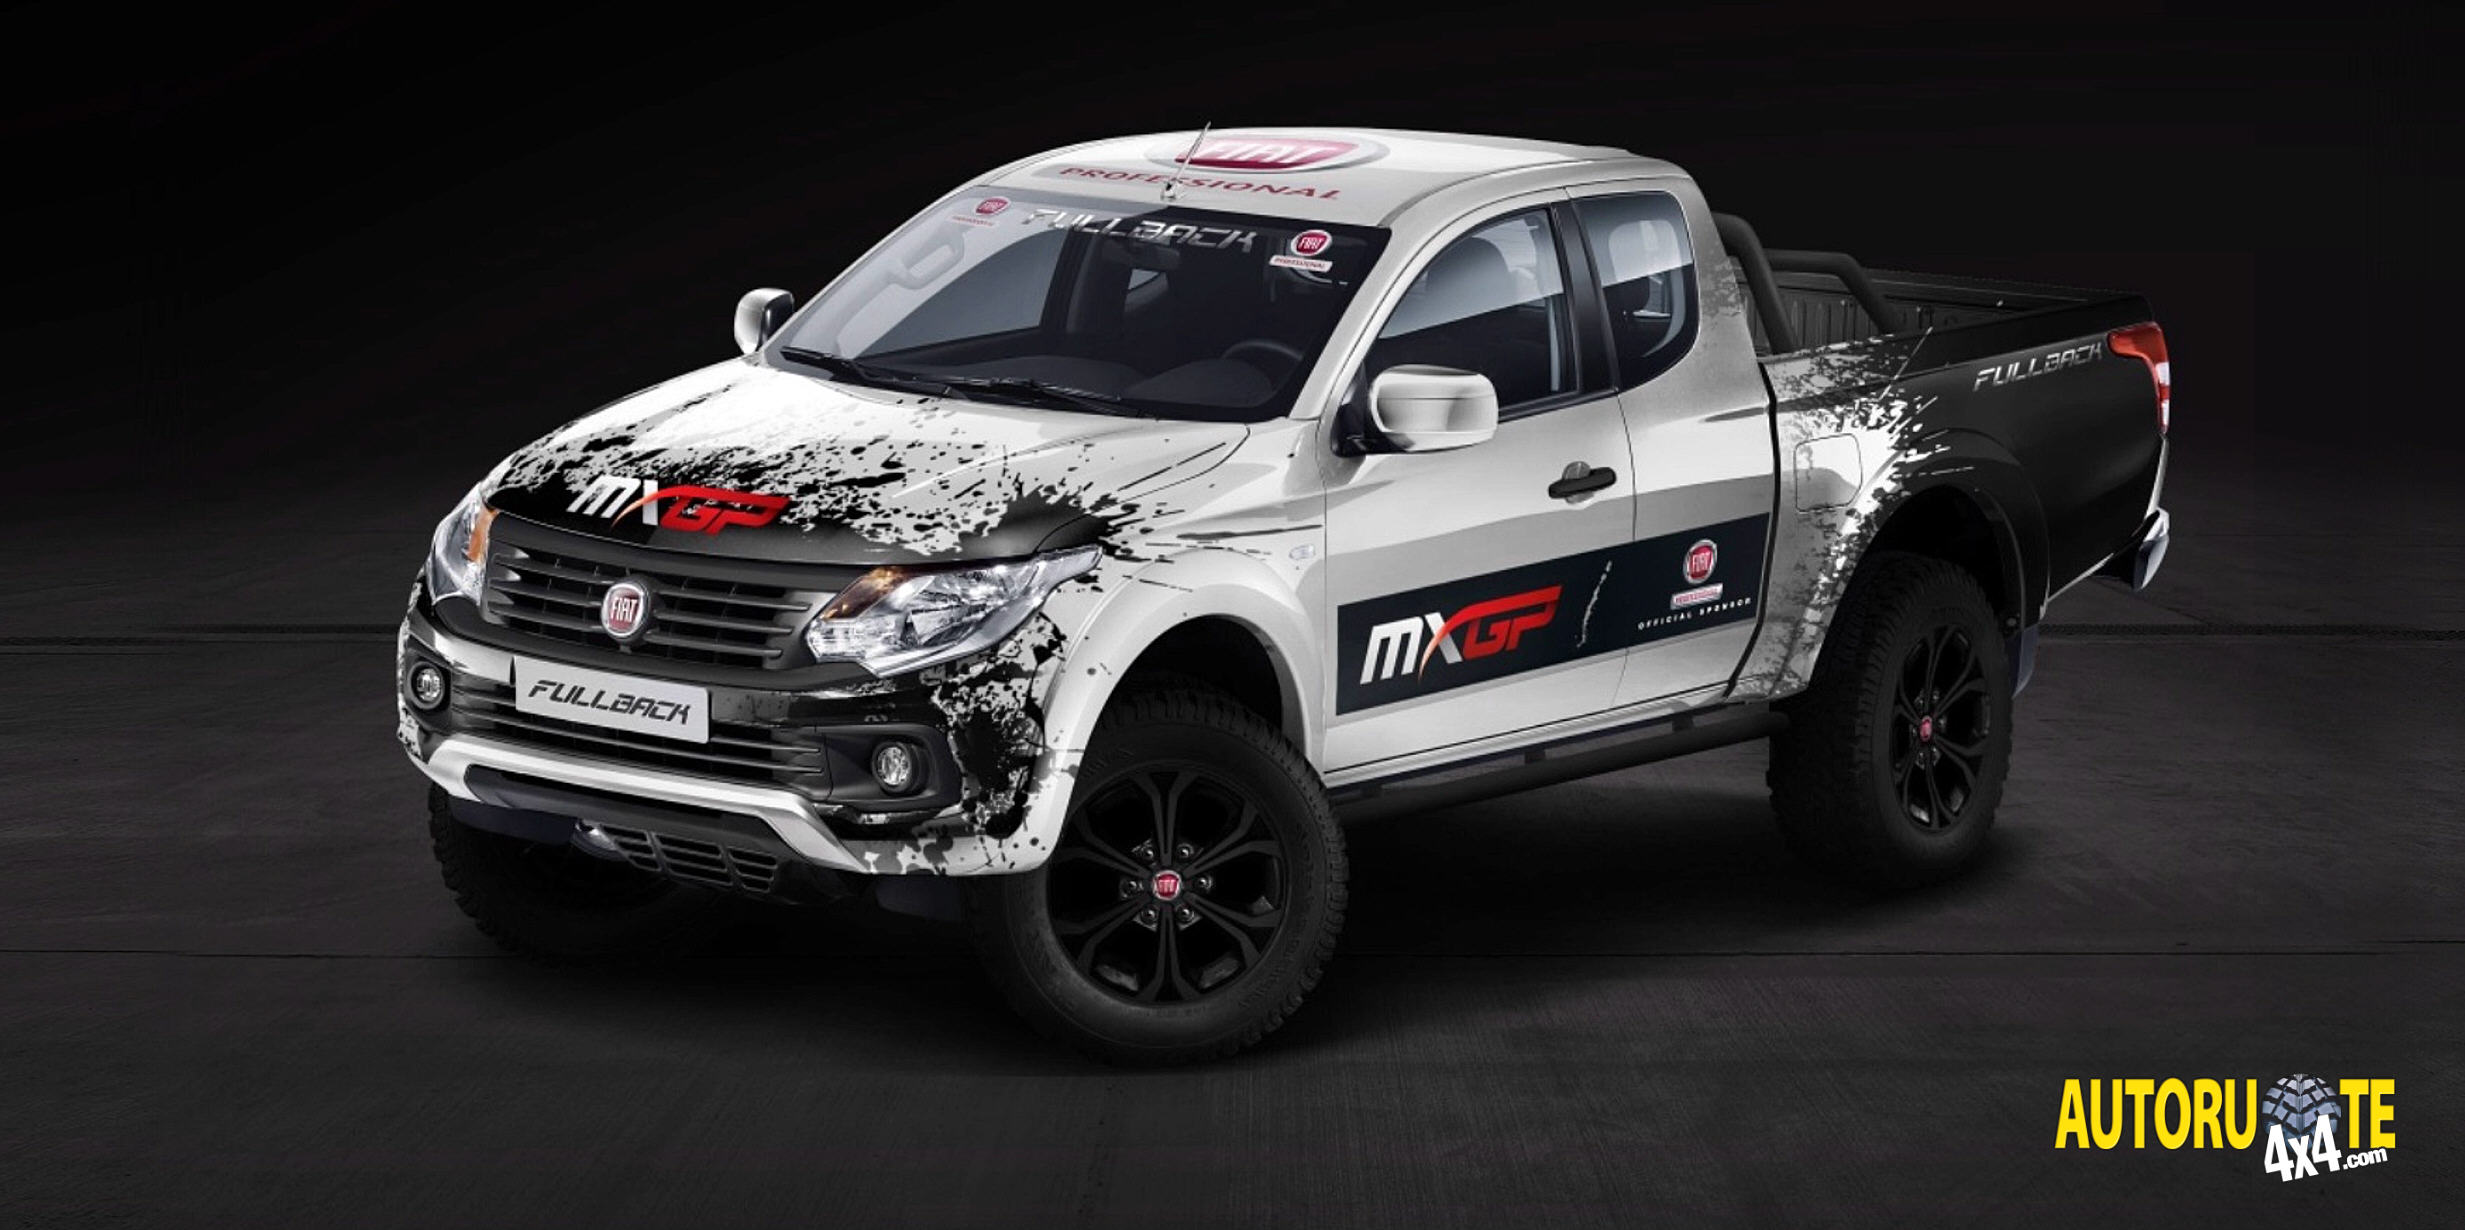 fiat fullback debutto alla 1 tappa europea del mxgp 2016. Black Bedroom Furniture Sets. Home Design Ideas